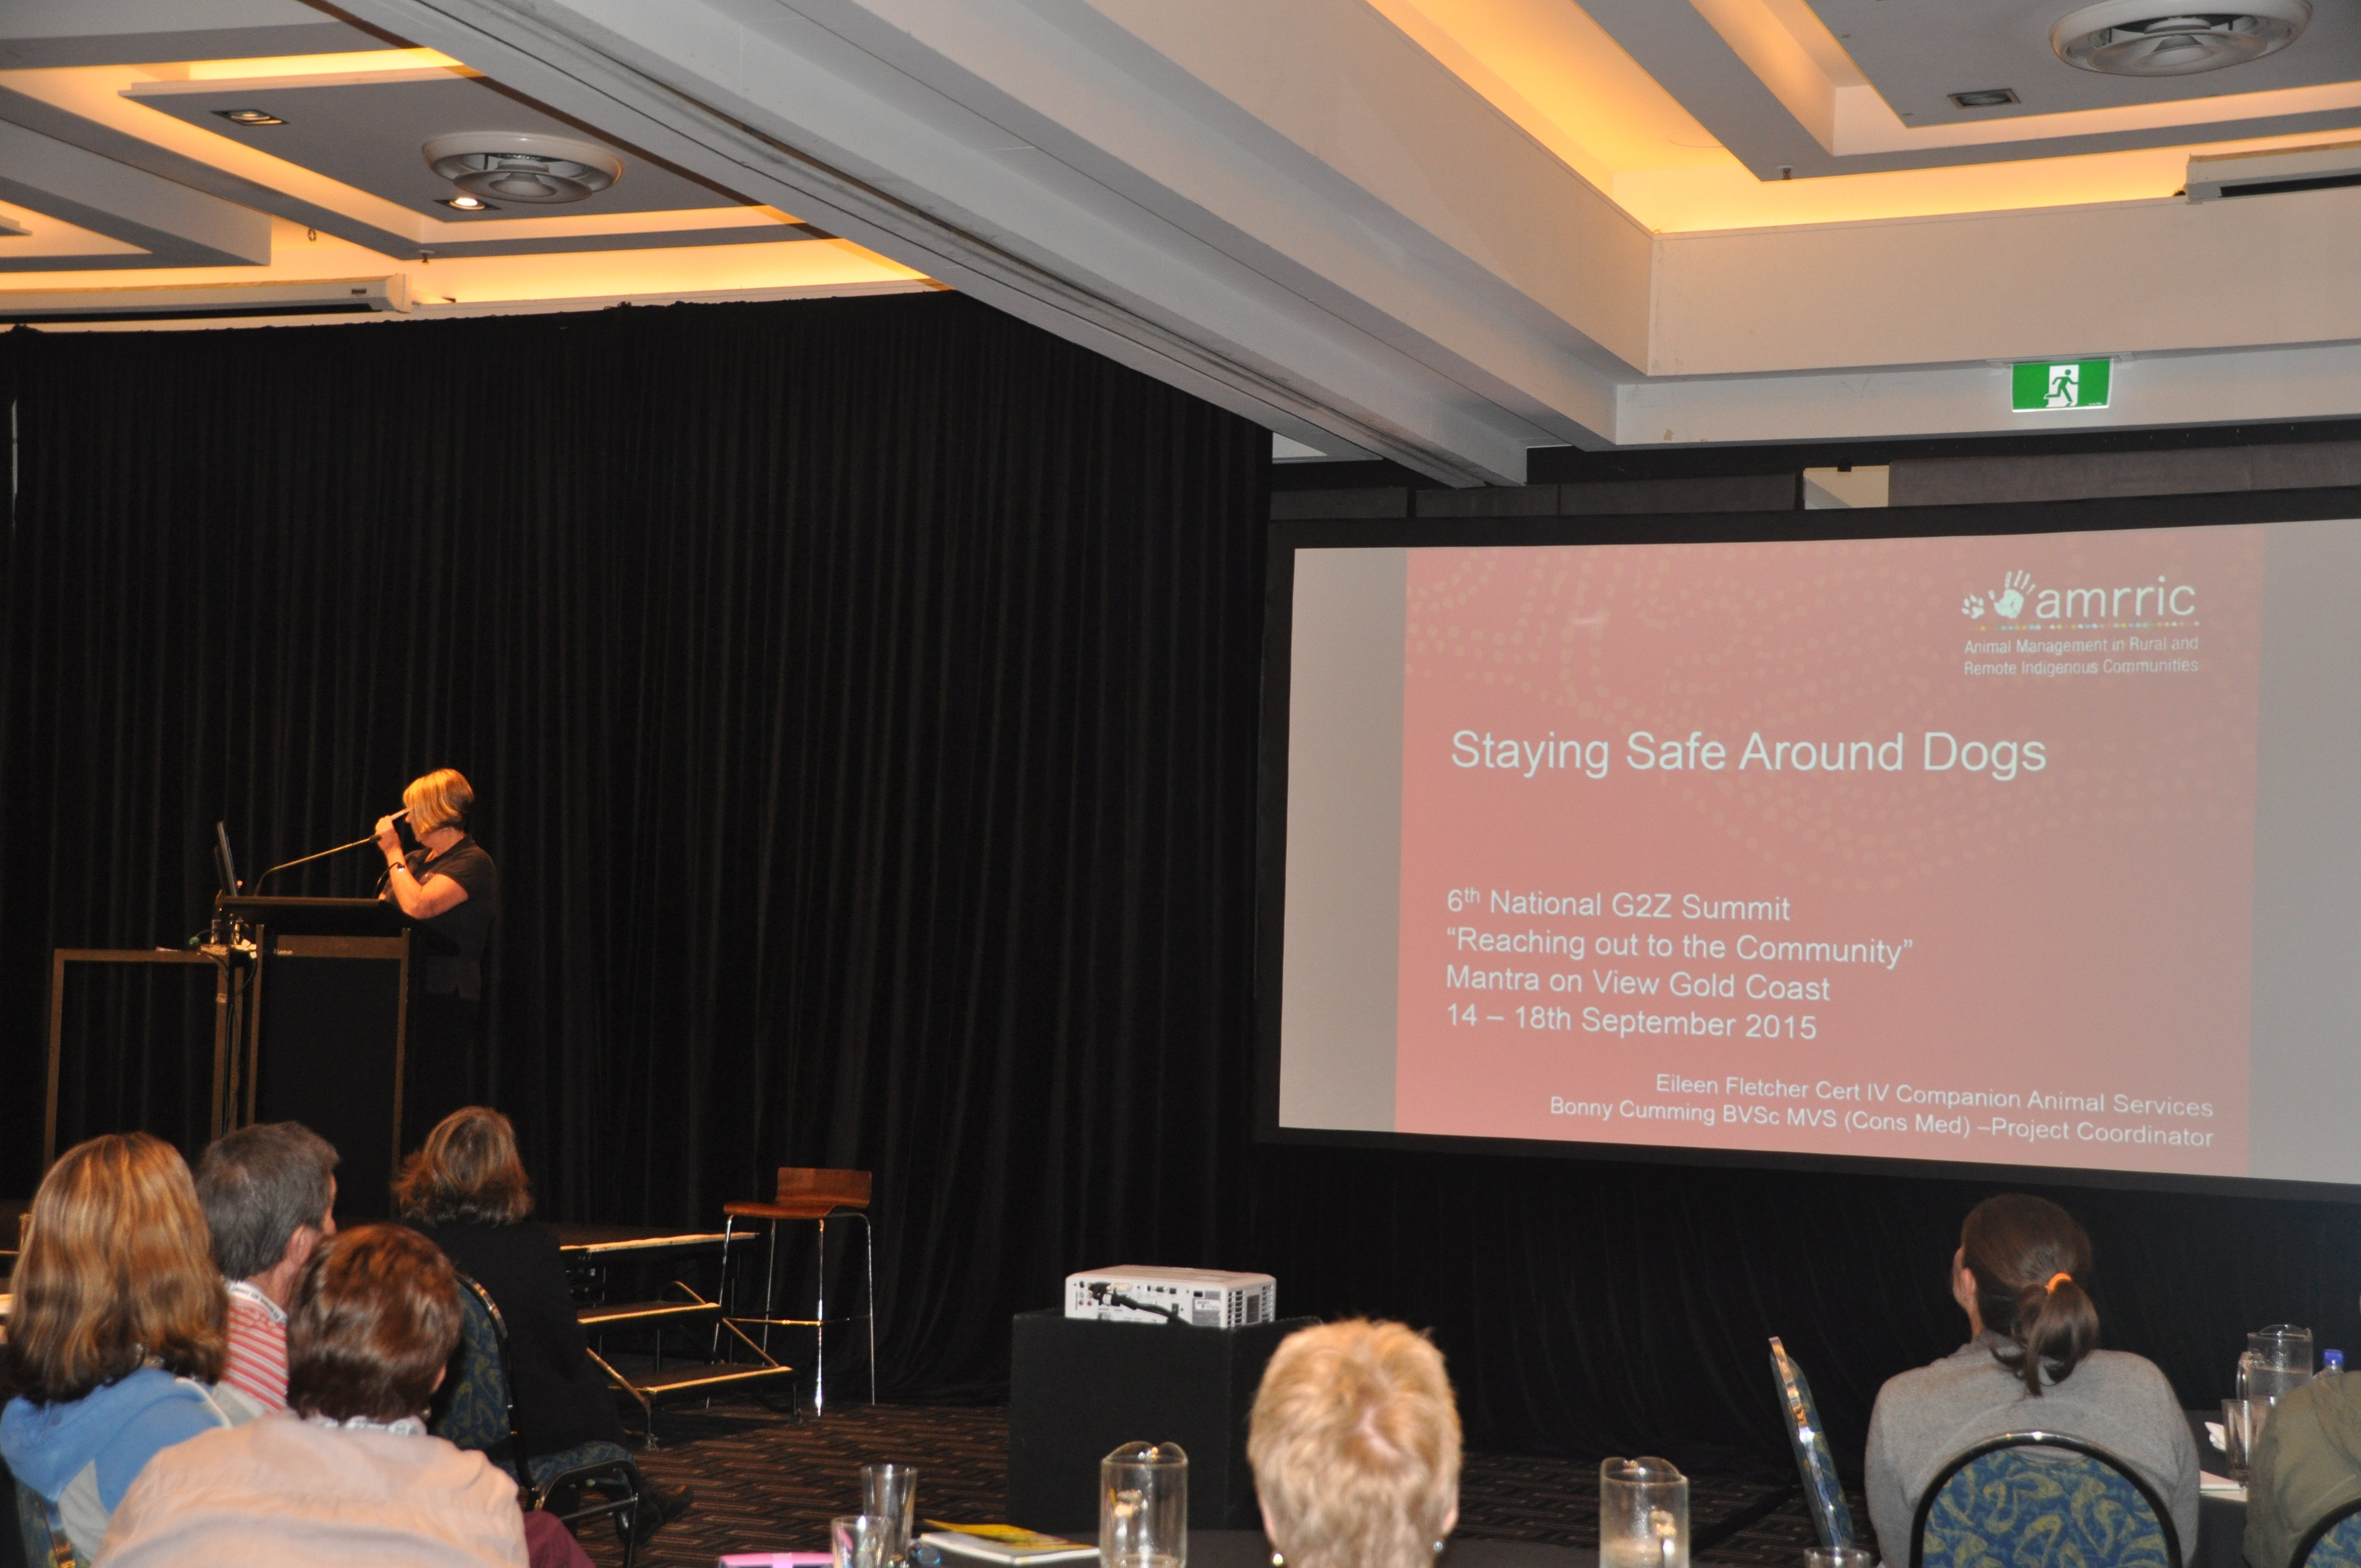 Eileen Fletcher - Staying safe around dogs